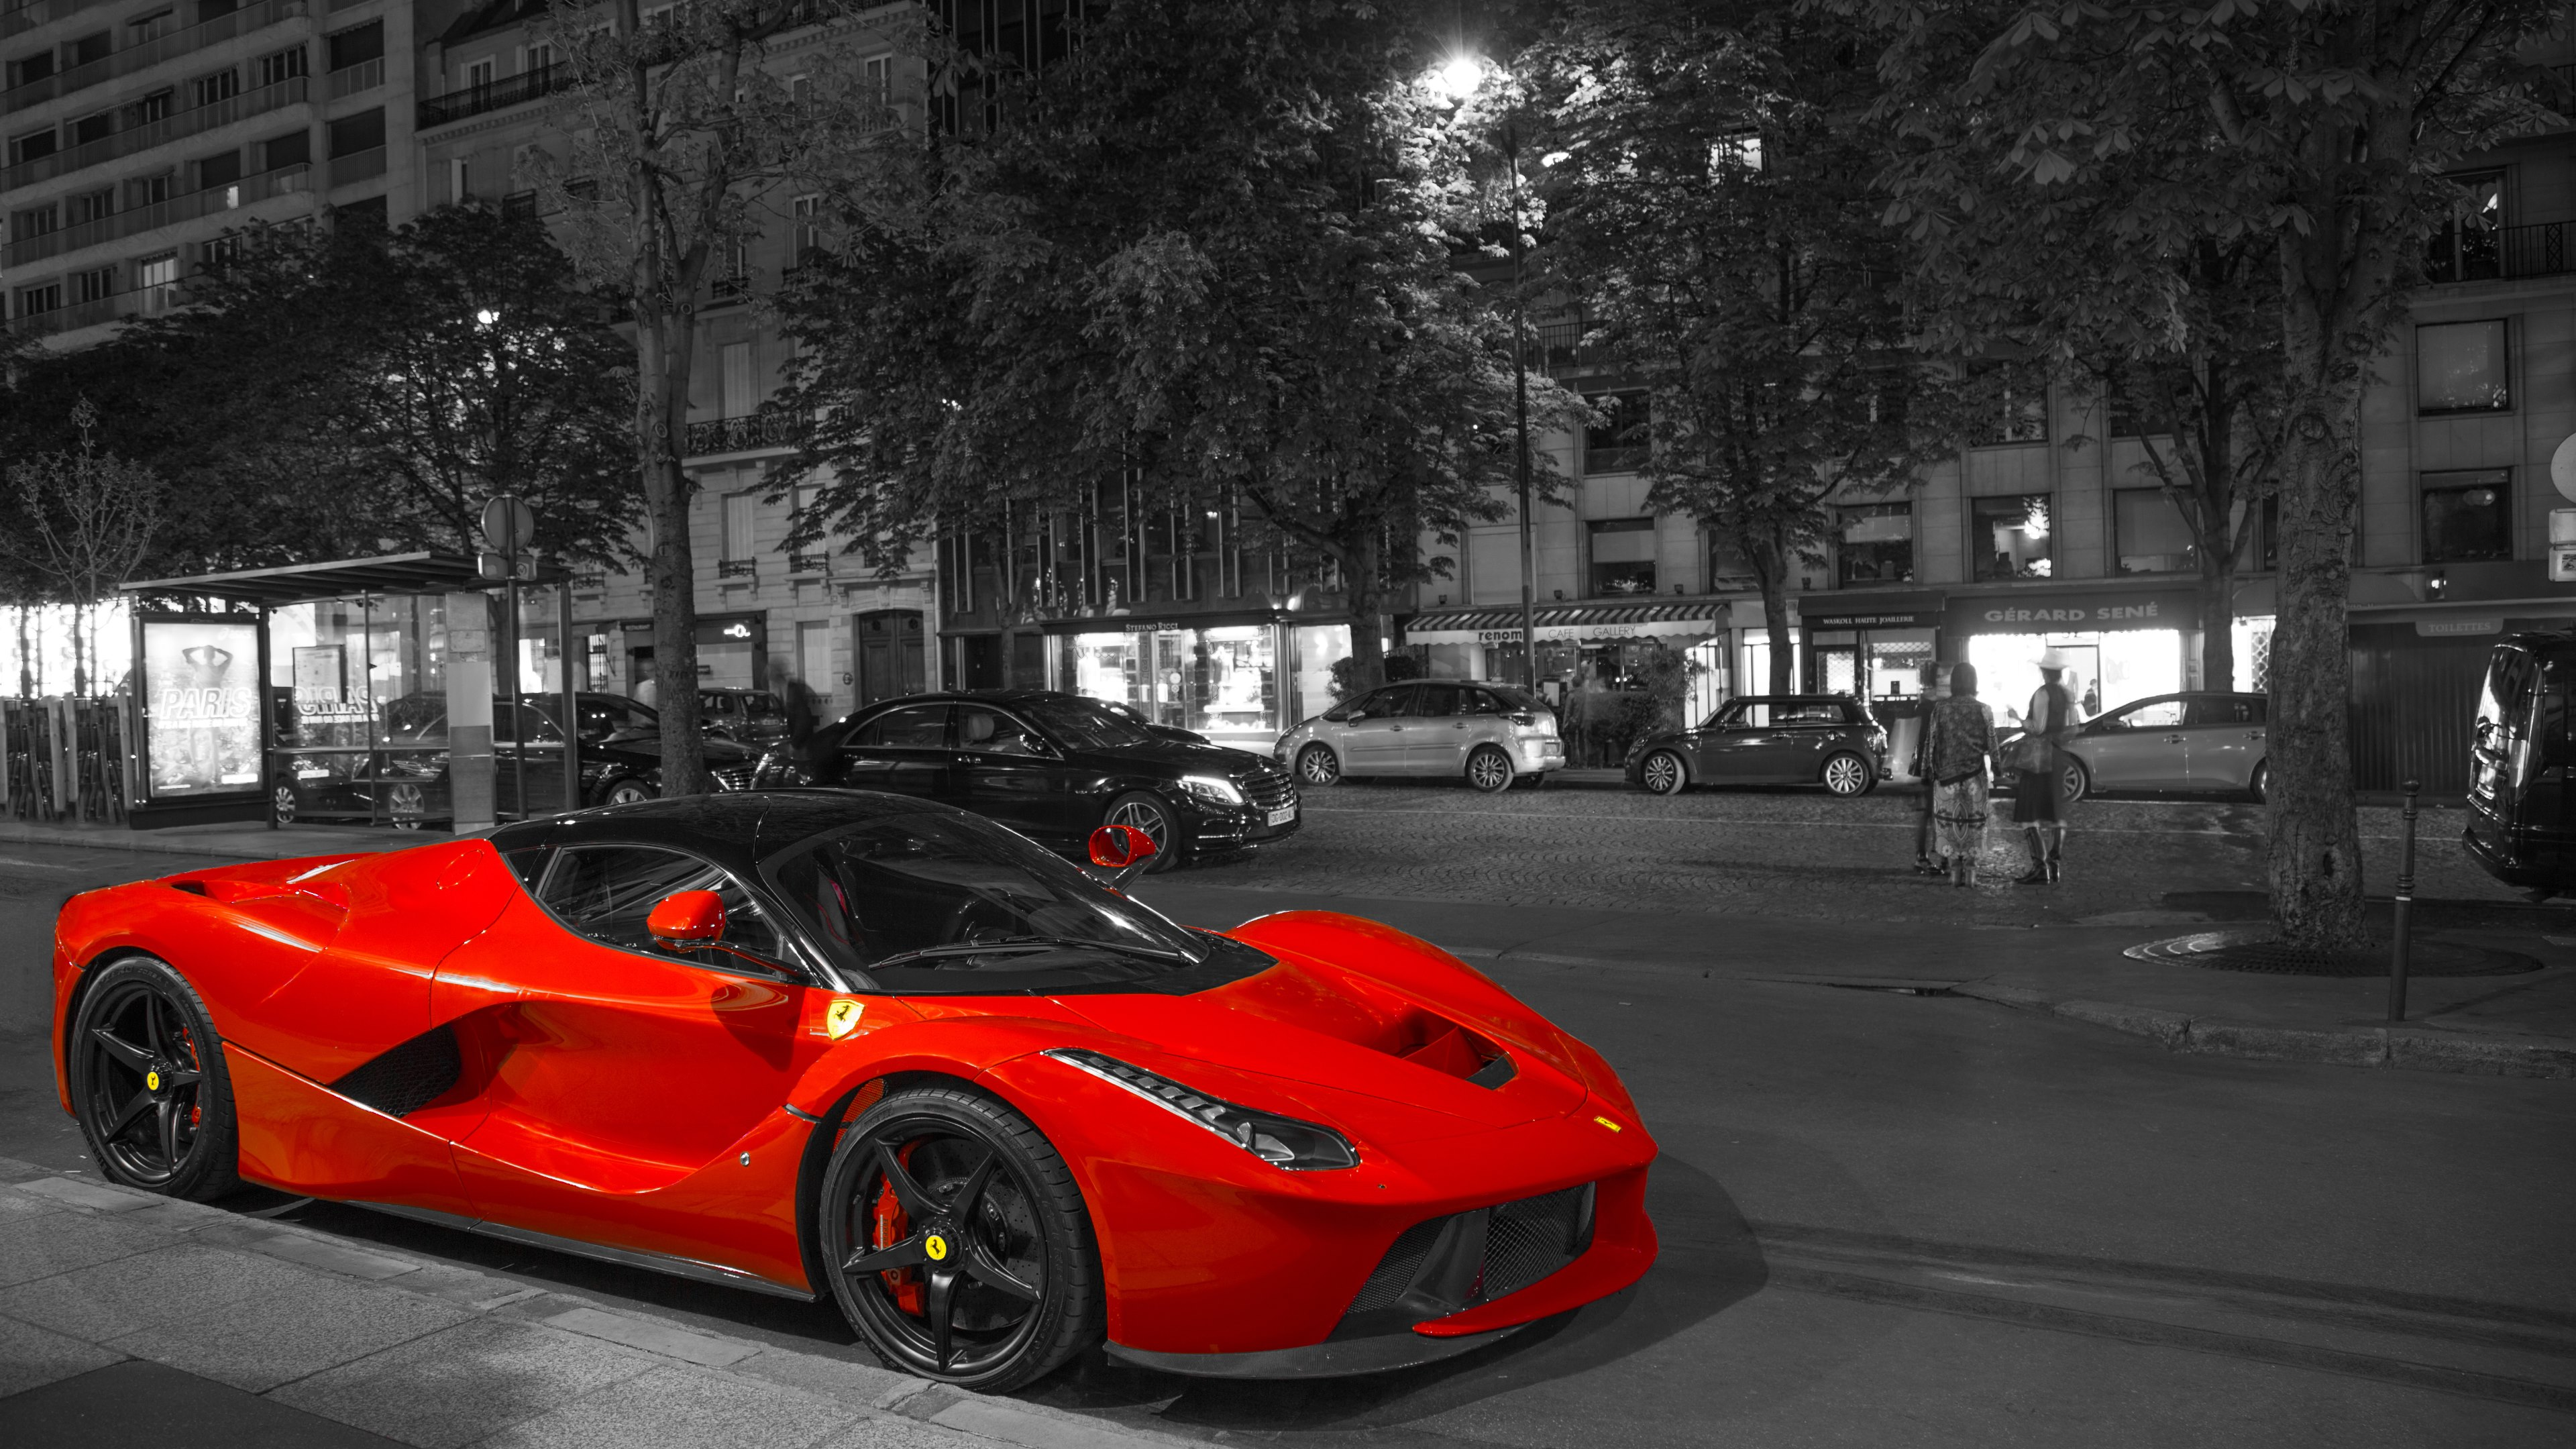 Free Download Super Red Car Laferrari Hd Wallpapers 4k Wallpapers 3840x2160 For Your Desktop Mobile Tablet Explore 47 4k Car Wallpapers 4k Car Wallpapers 4k Car Wallpapers For Desktop